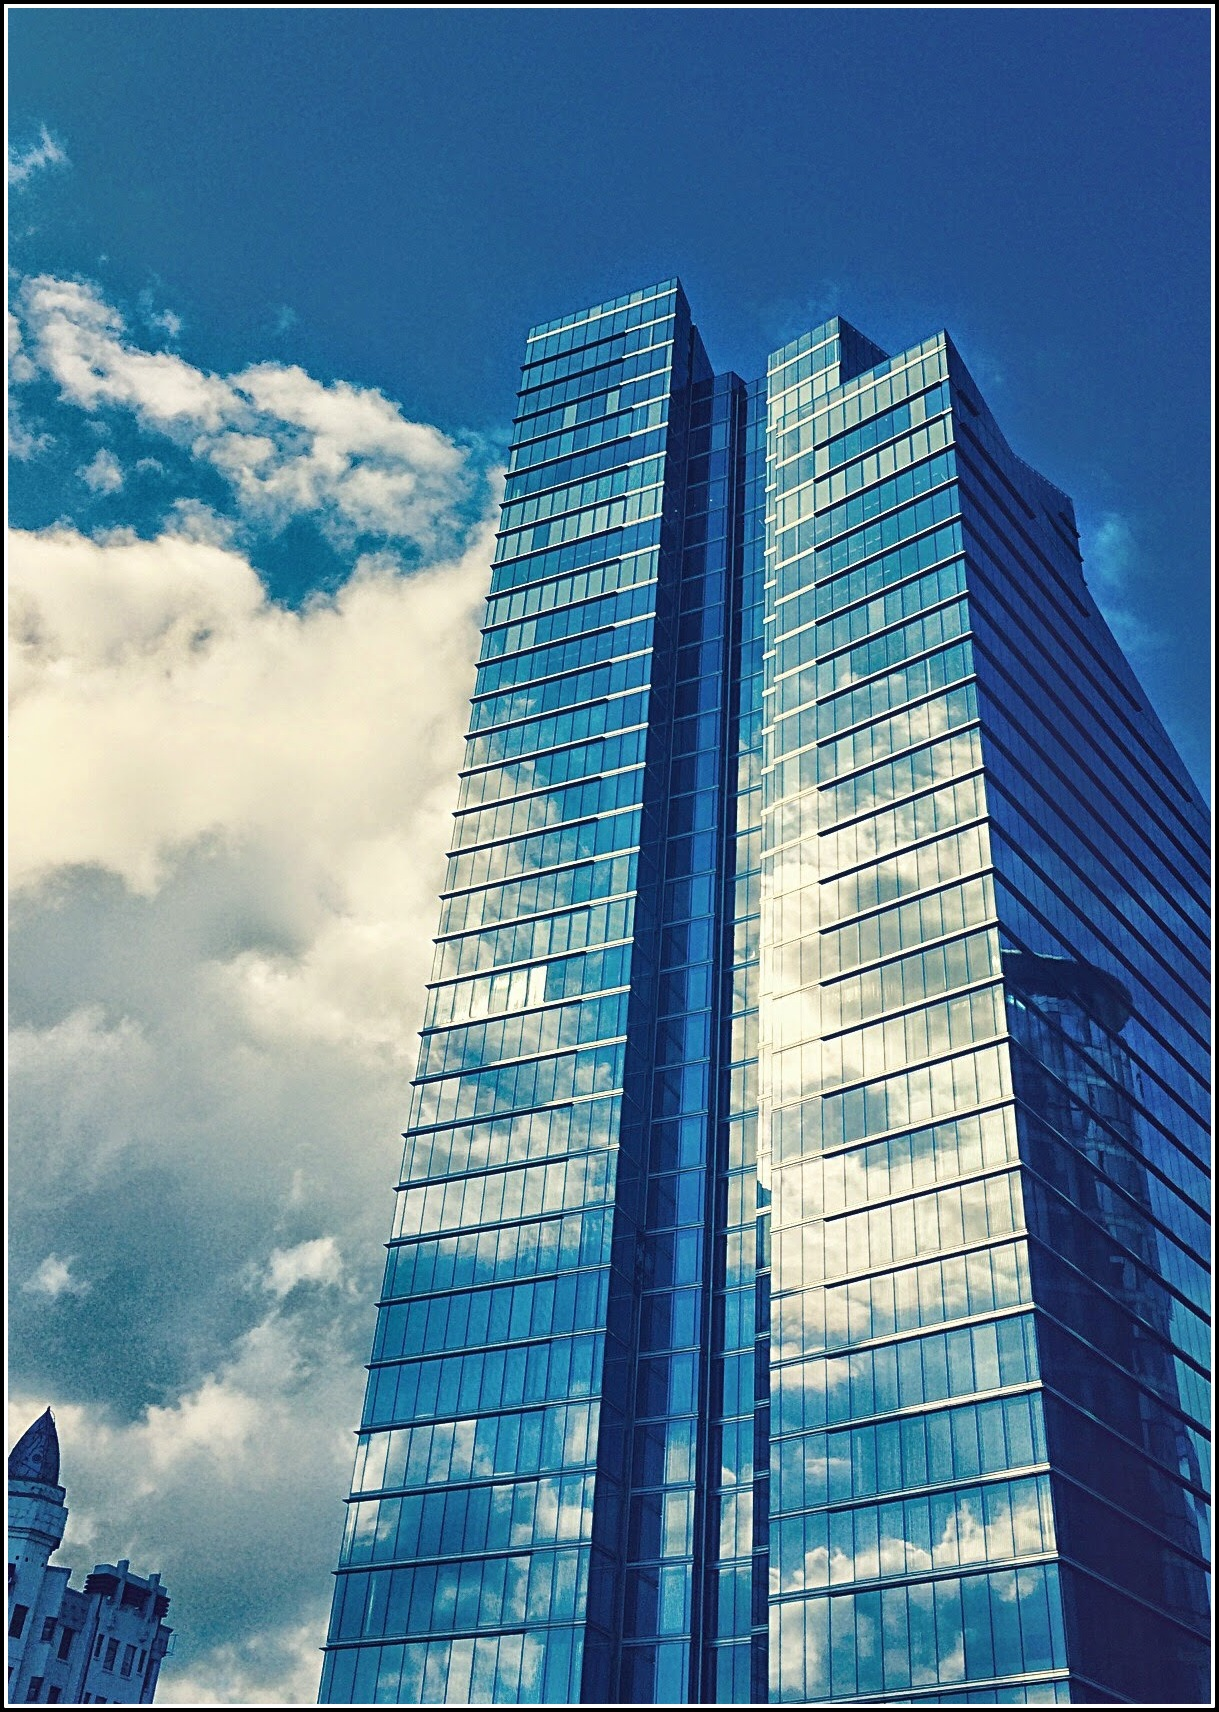 Towers and Clouds, Brussels by Dena T Bray©